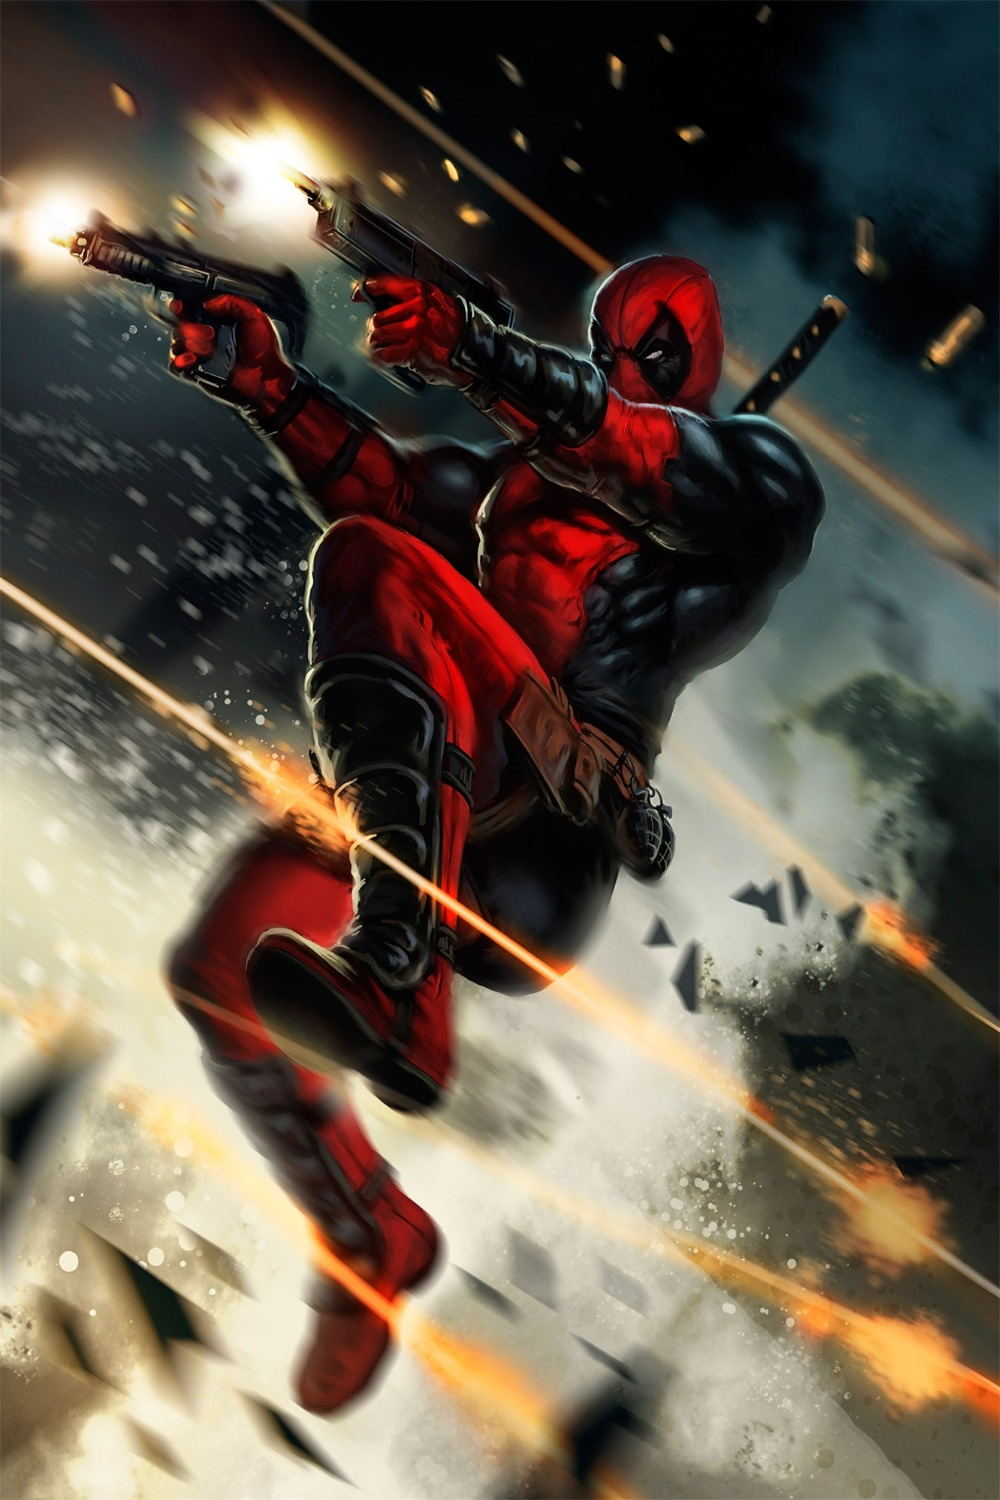 Deadpool Wade Wilson USA Superheroes Comic Movie Art Silk Poster Print Home Decor Painting DY809(China (Mainland))